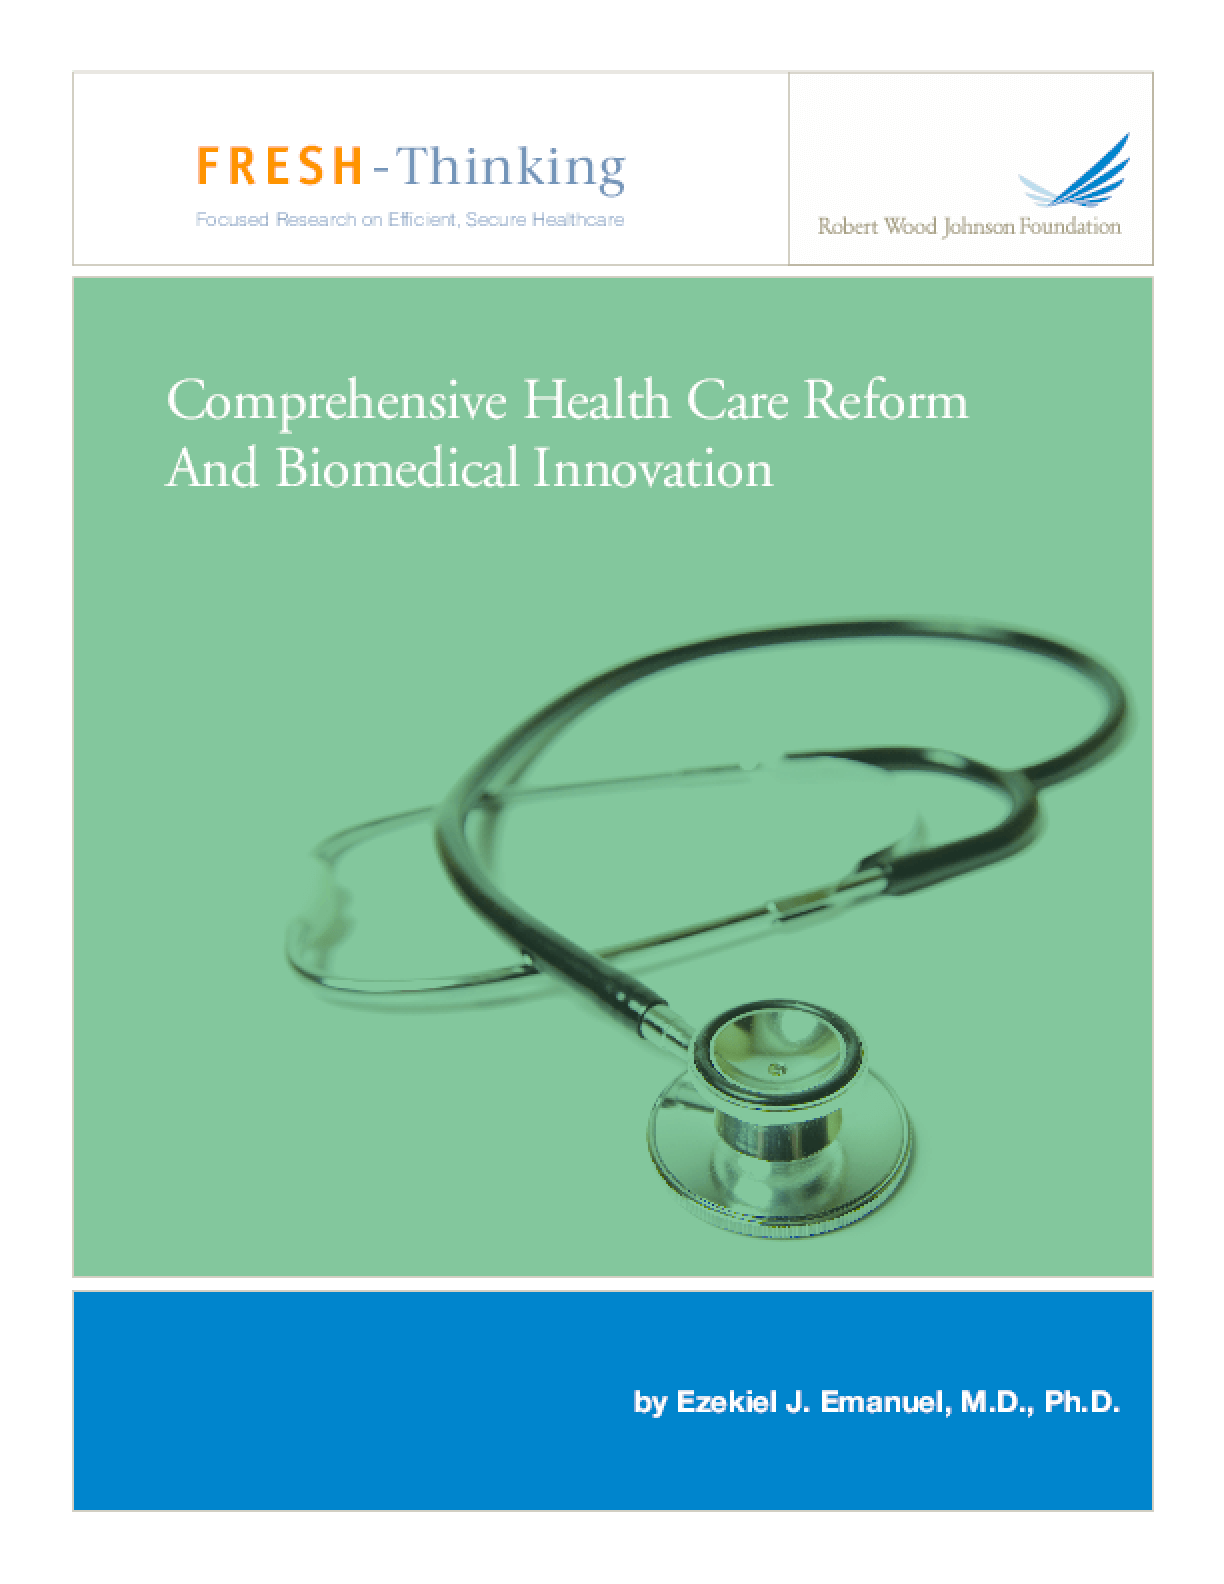 Comprehensive Health Care Reform and Biomedical Innovation